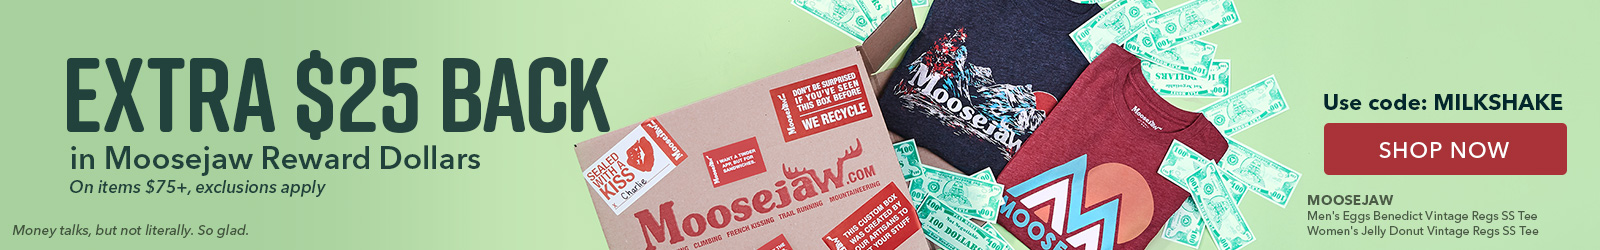 Extra $25 Back in Moosejaw Rewards with Items Over $75 and Code MILKSHAKE